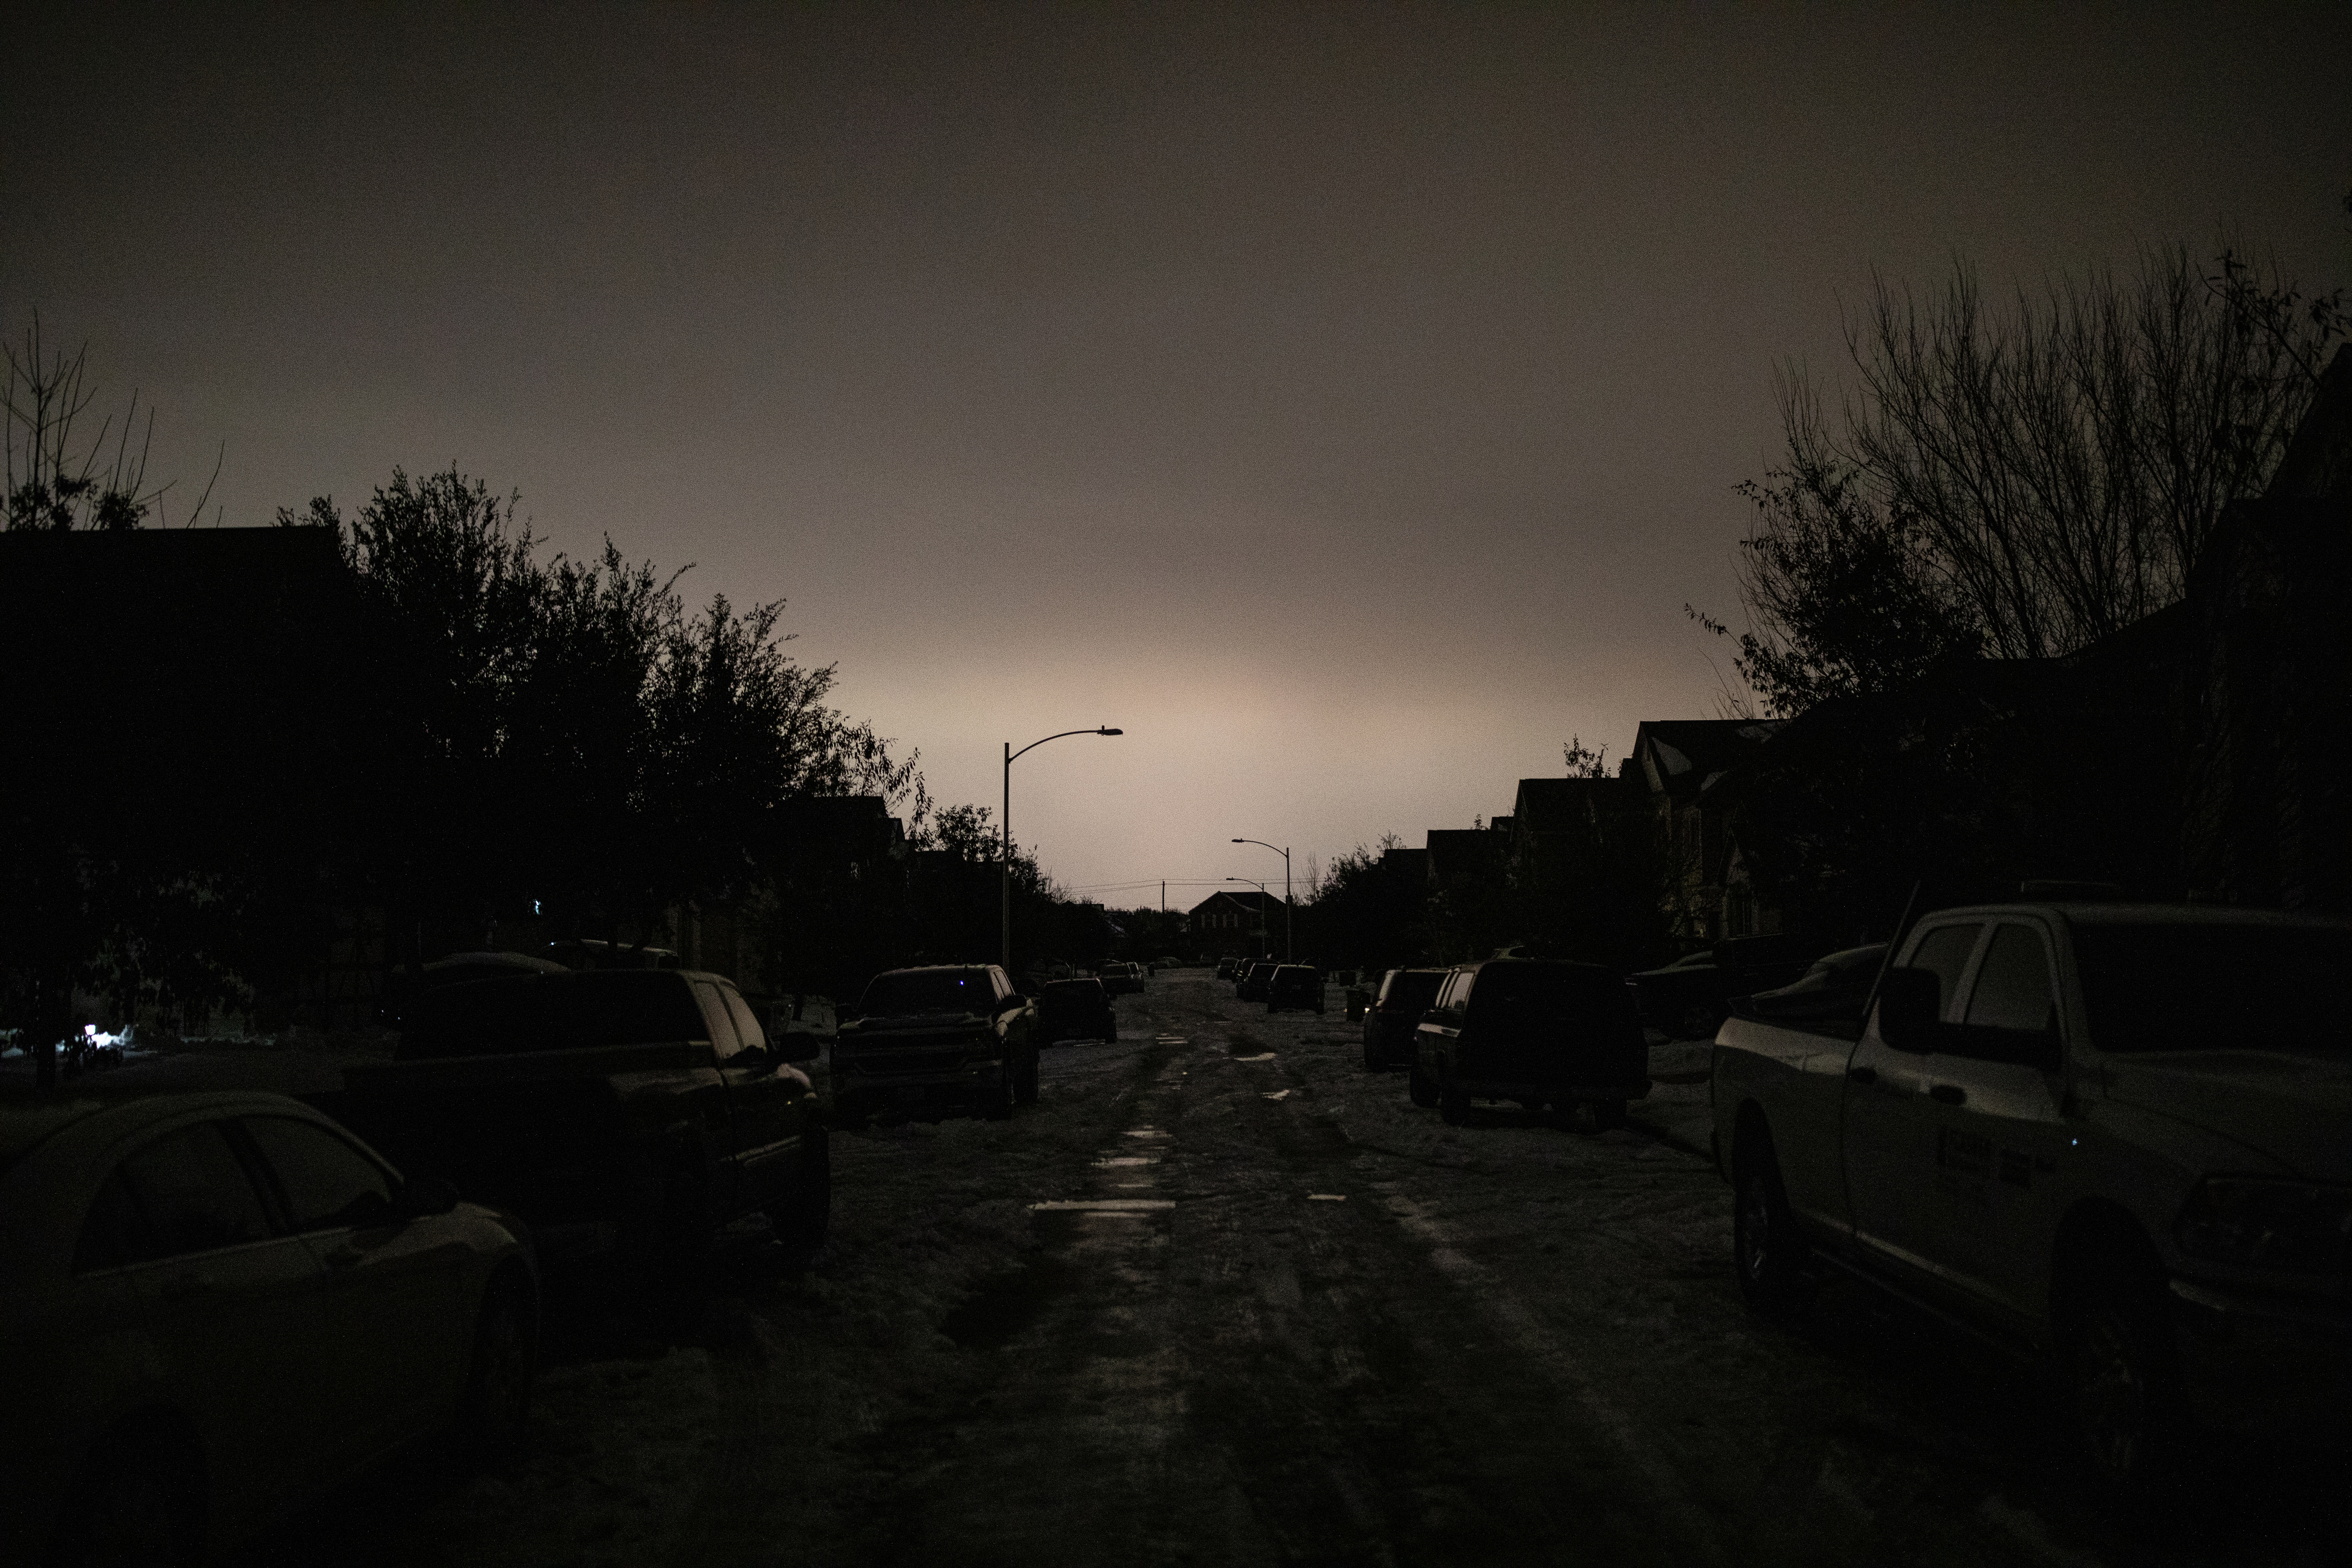 A neighborhood without power in Austin, Texas on Feb. 16, 2021.